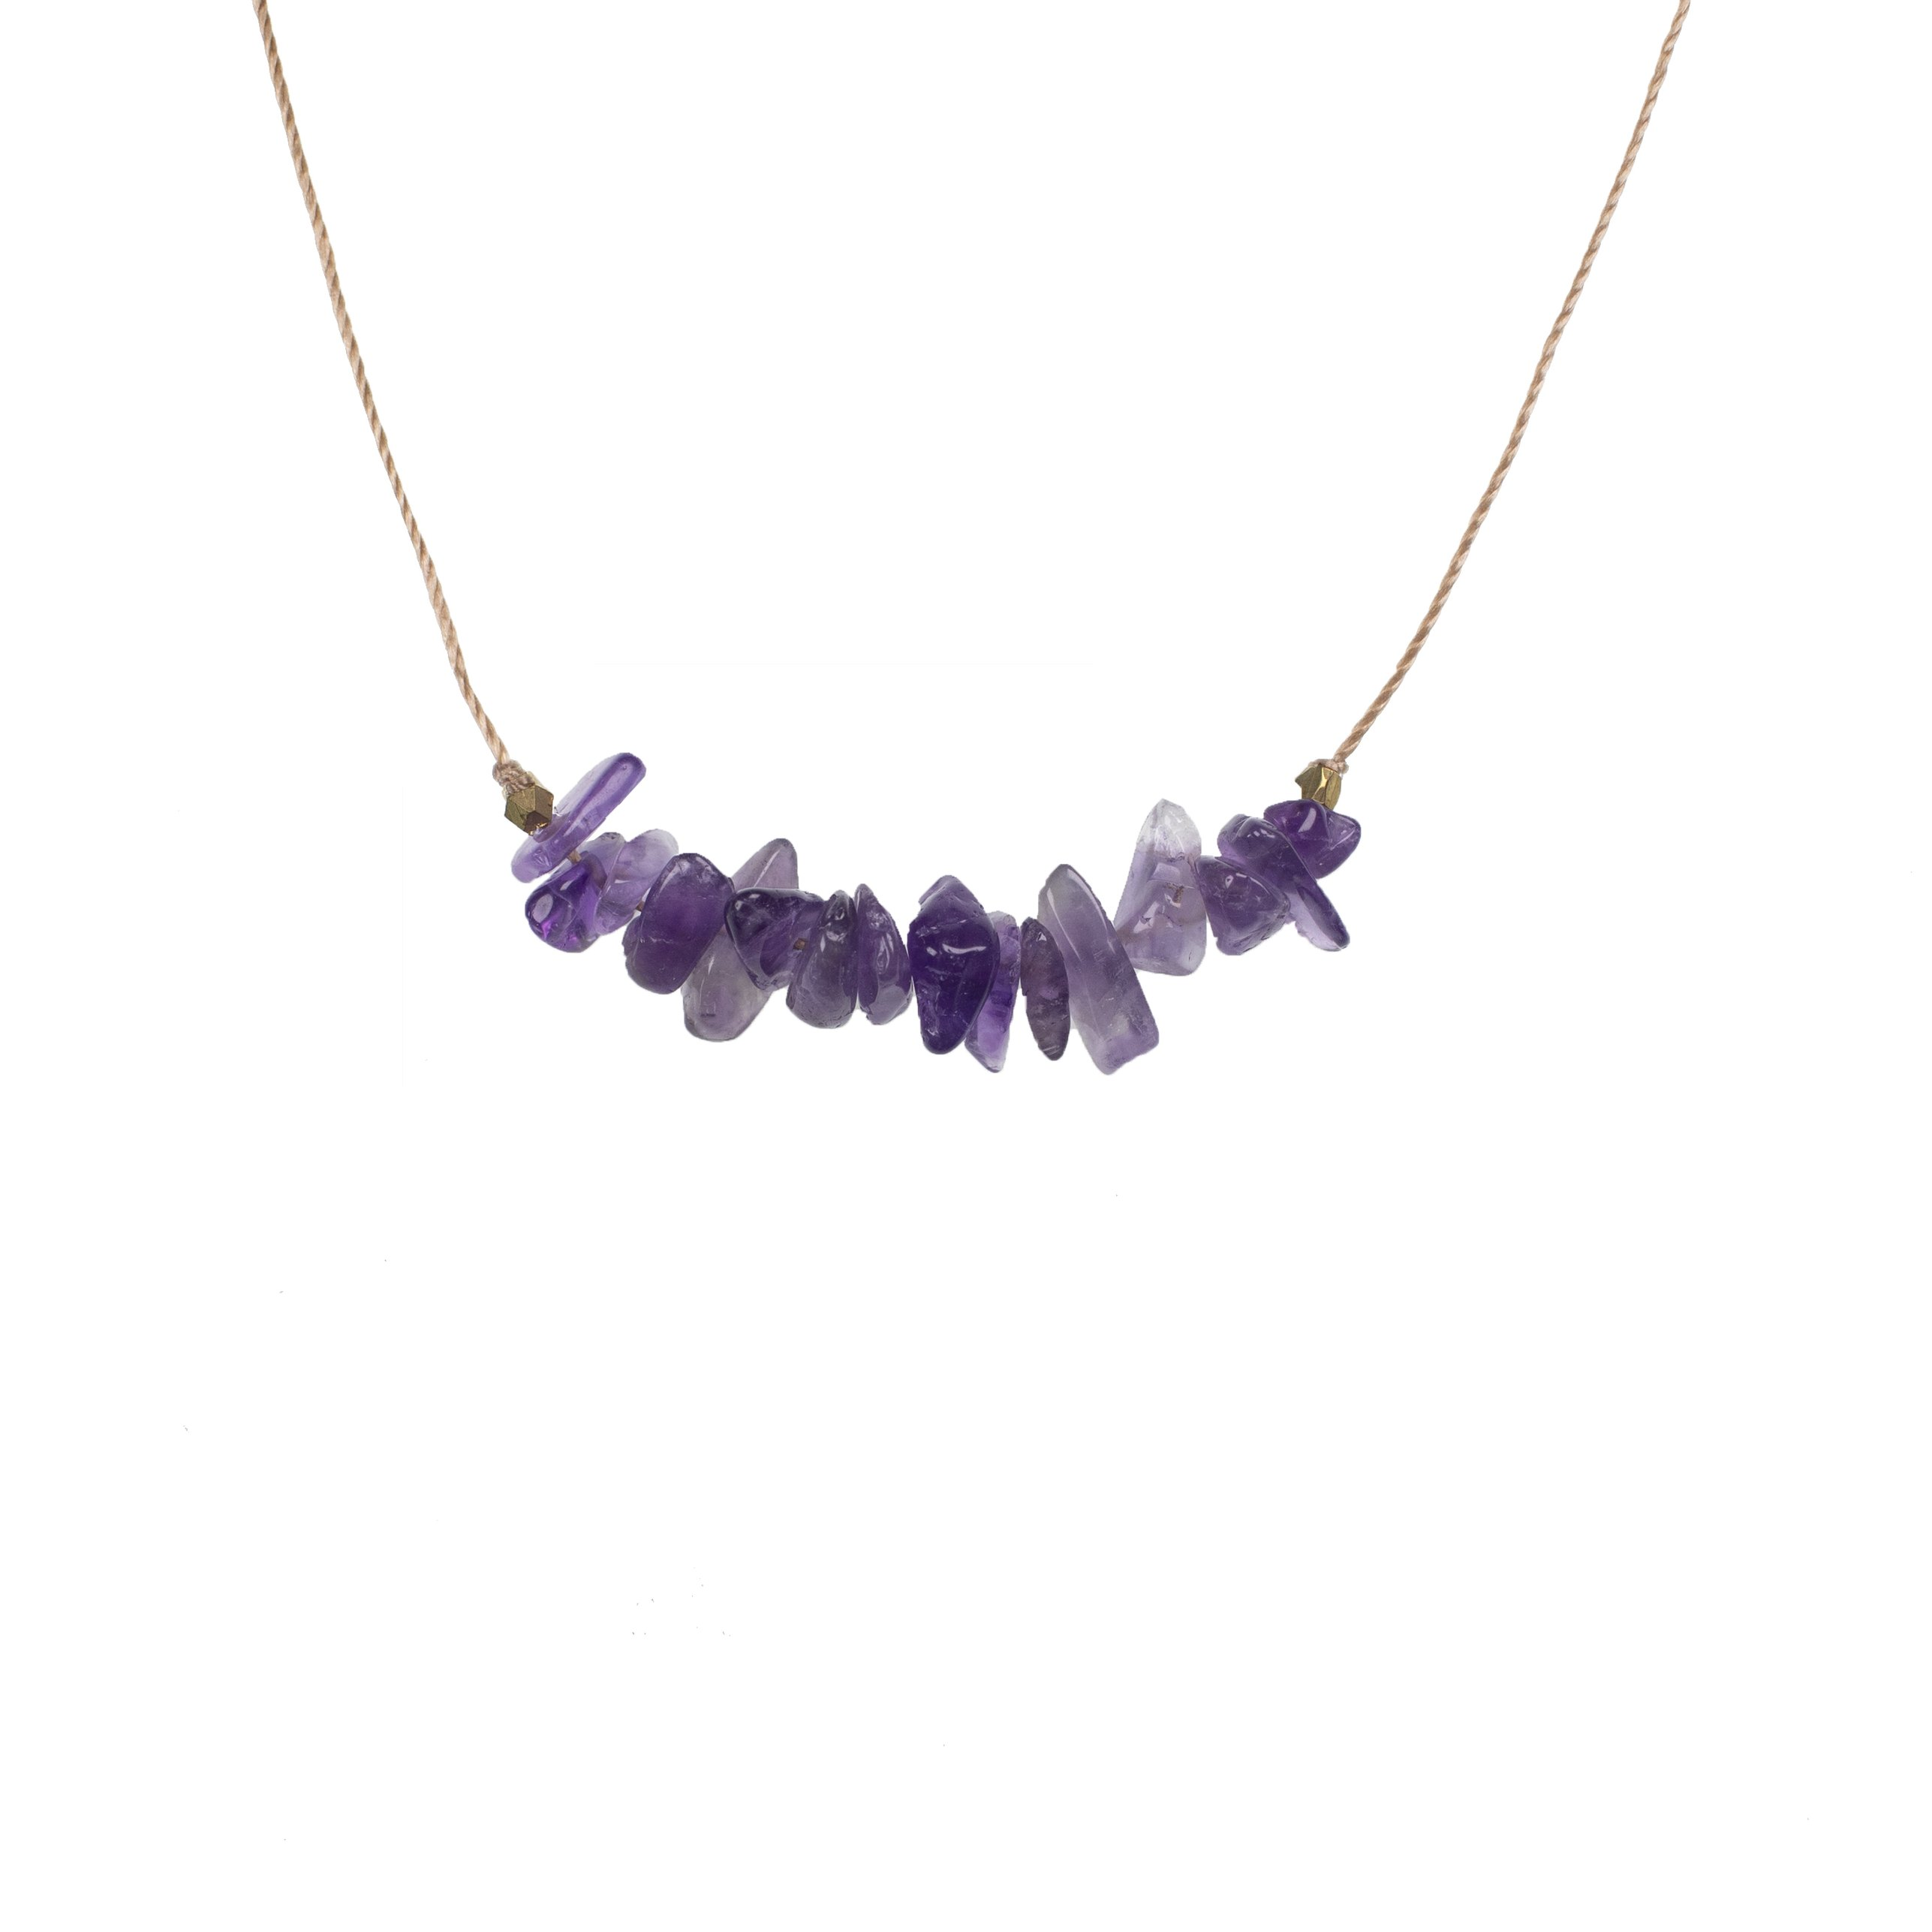 Amethyst Seed Necklace for Healing